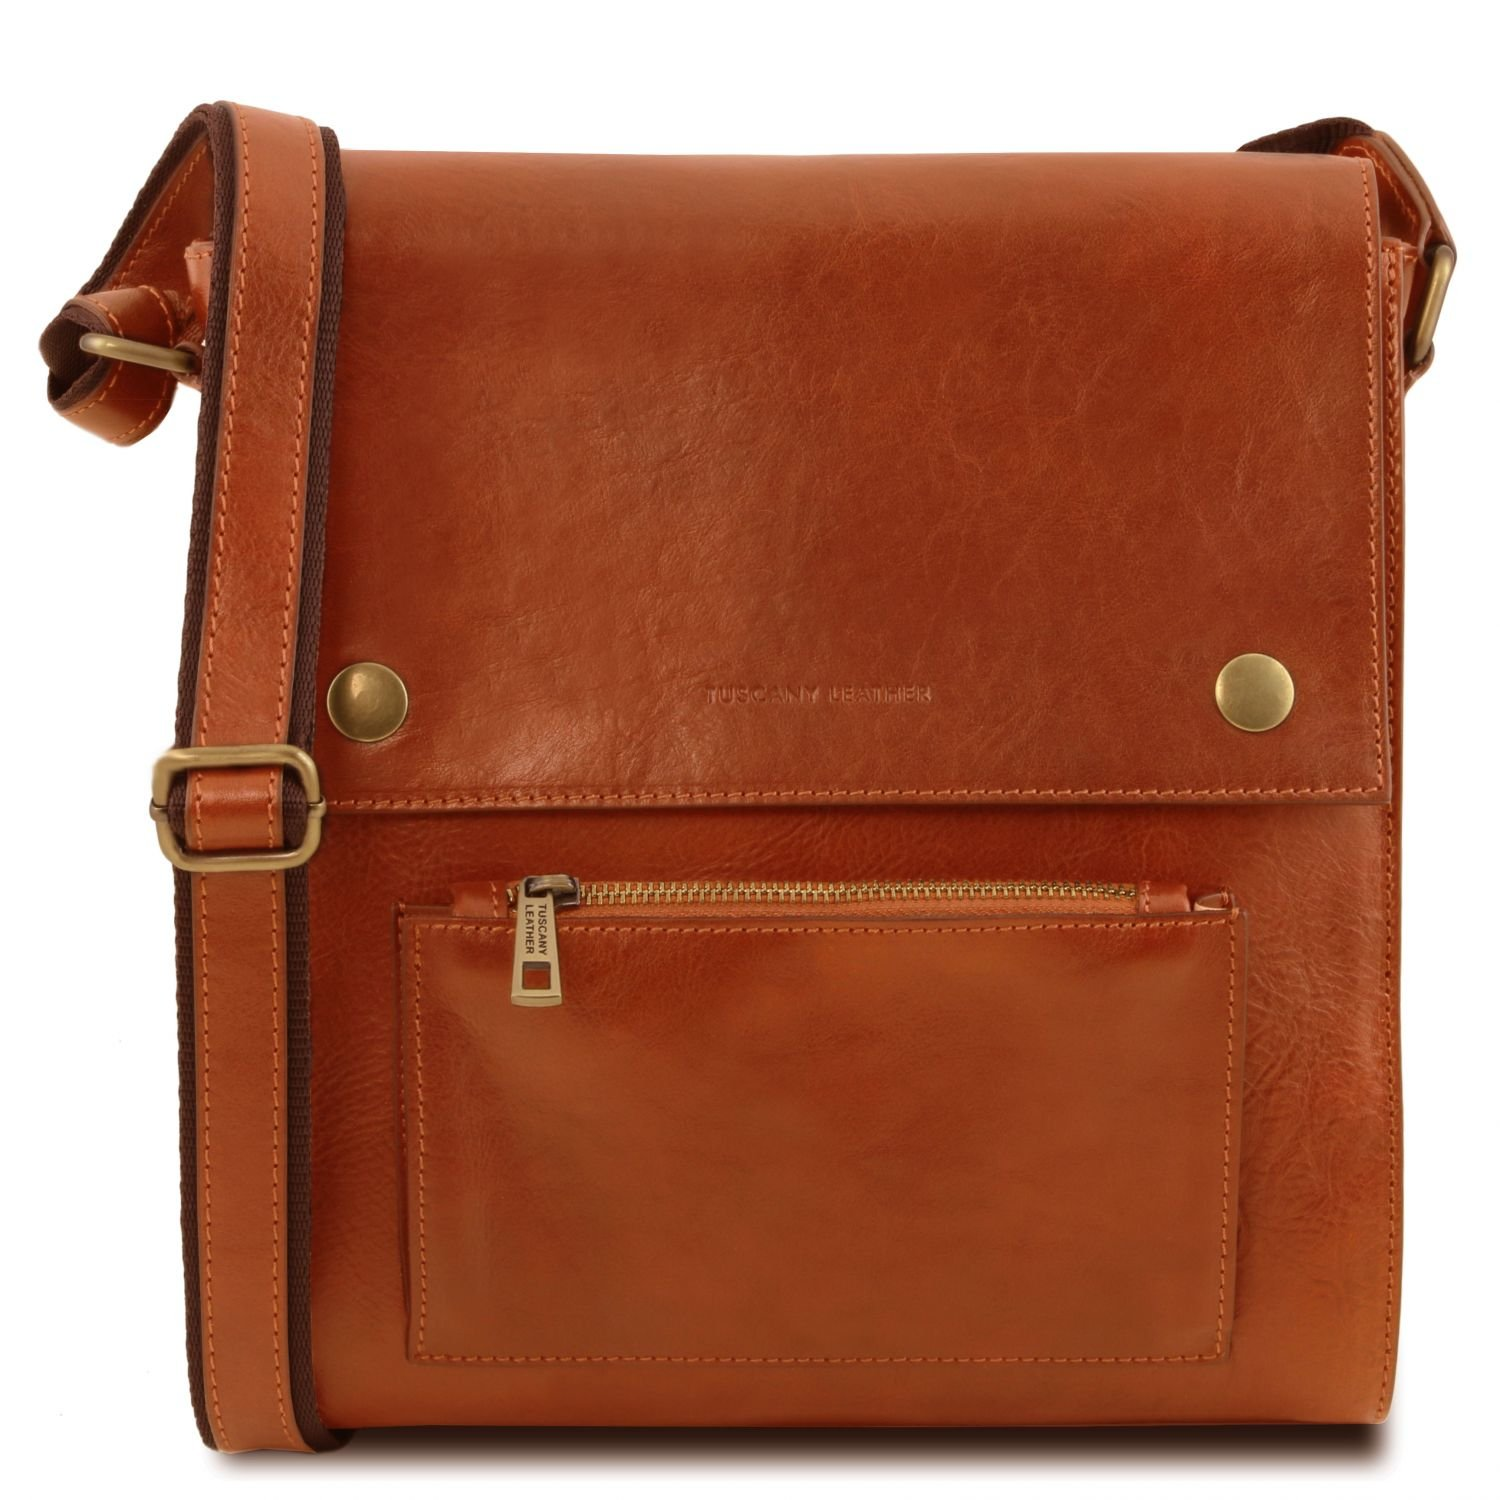 Tuscany Leather Oliver Leather crossbody bag for men with front pocket Honey by Tuscany Leather (Image #1)